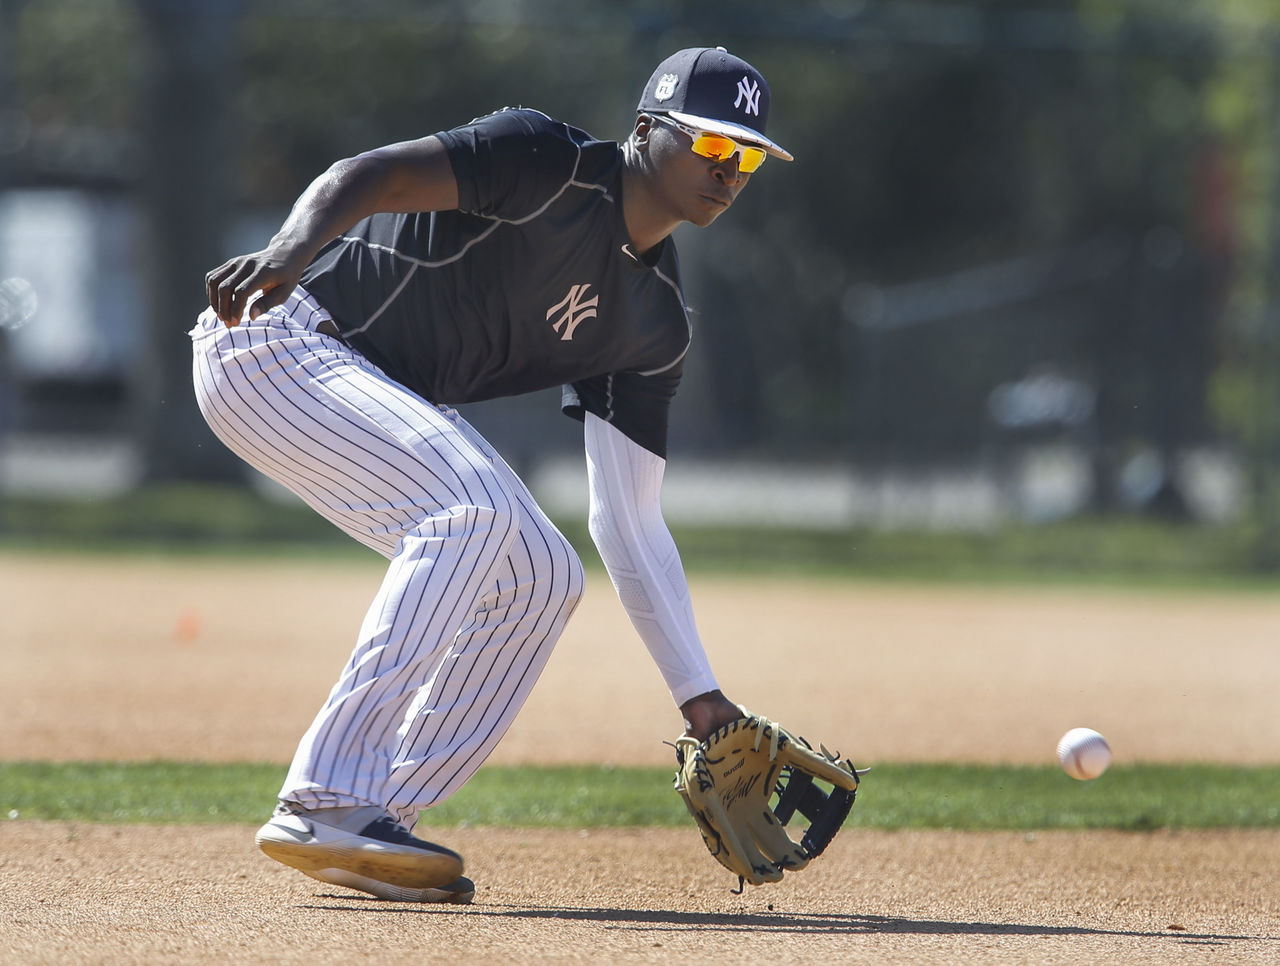 Cropped_2017-02-20t205940z_1596720022_nocid_rtrmadp_3_mlb-new-york-yankees-workouts